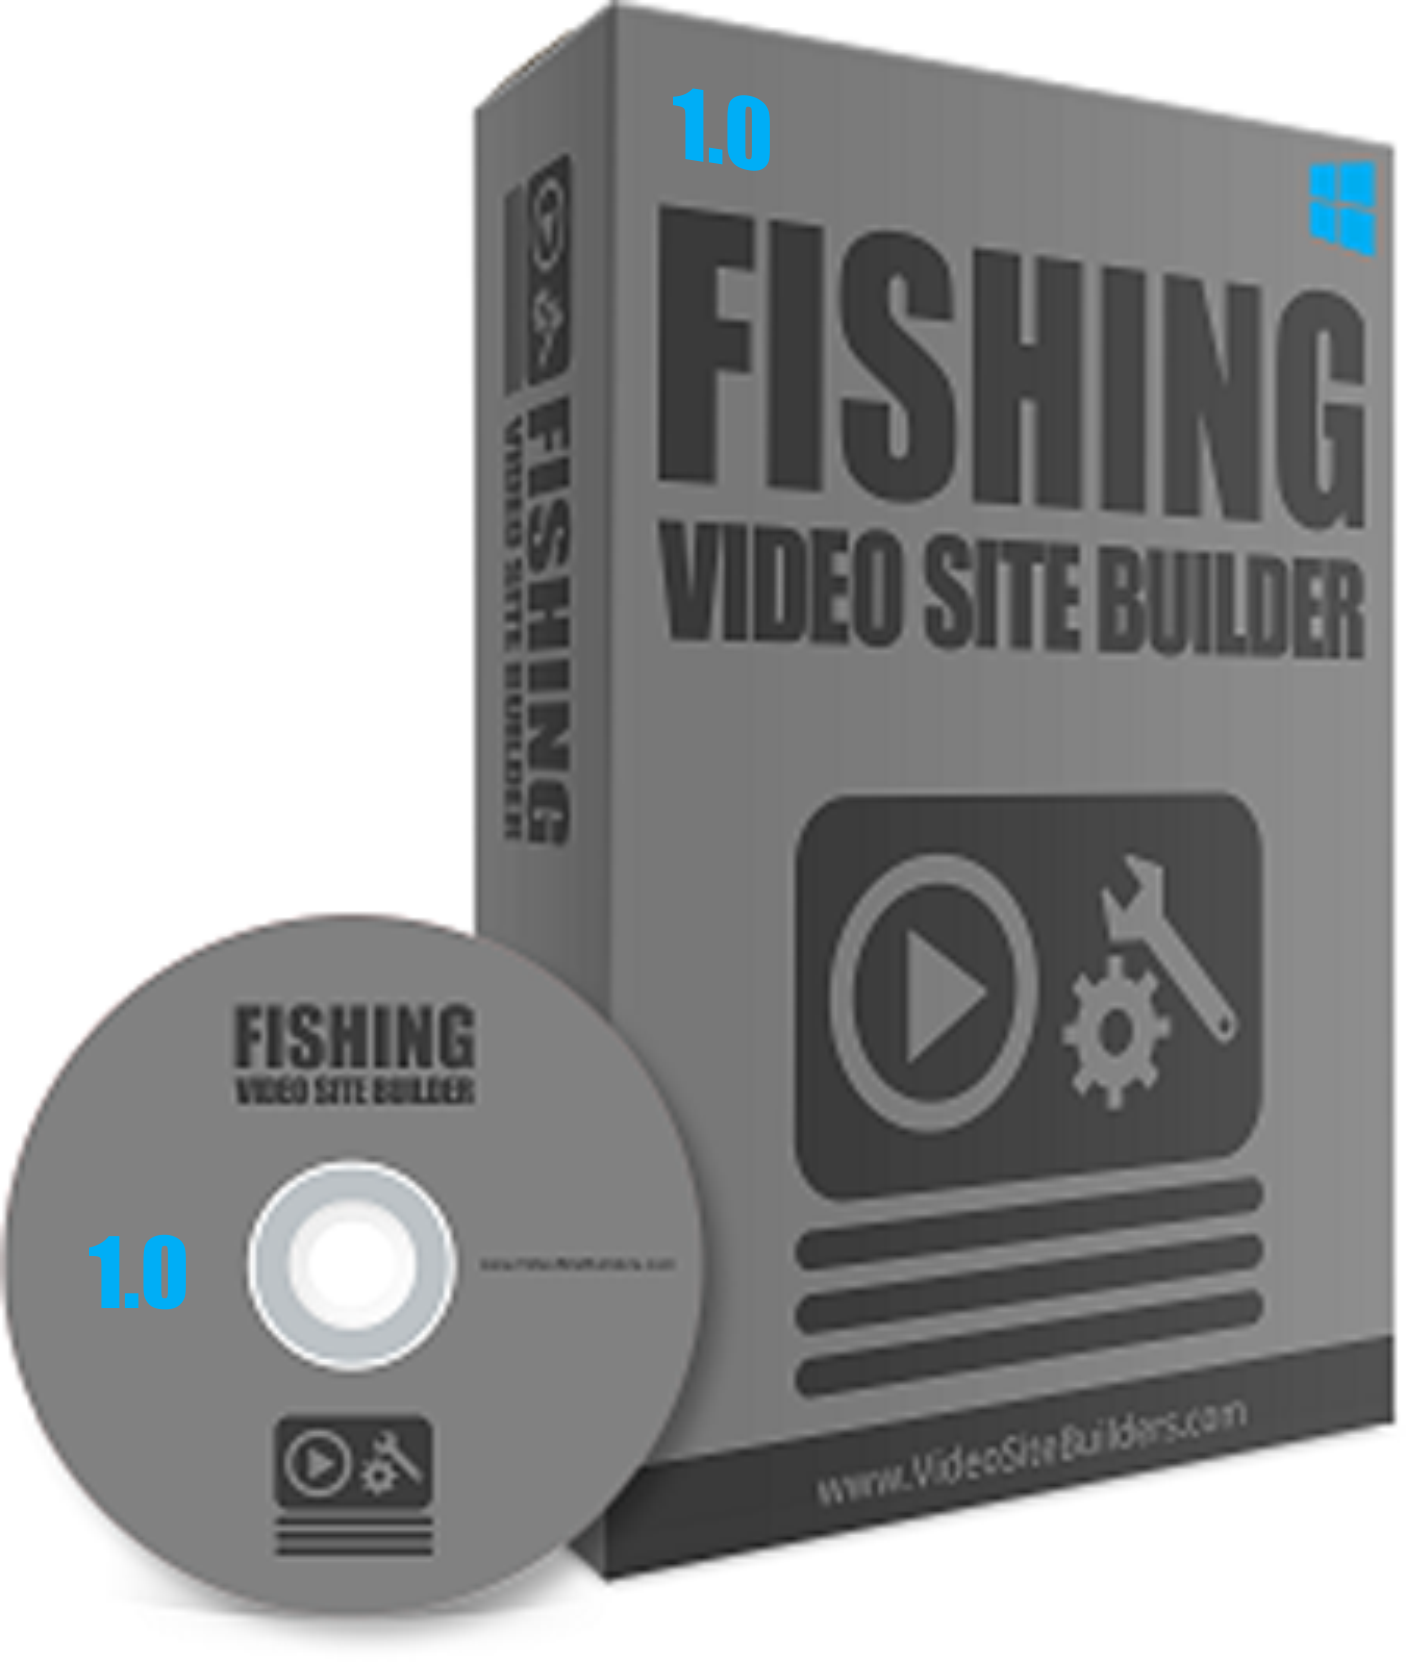 Own Moneymaking Video Site about Fishing